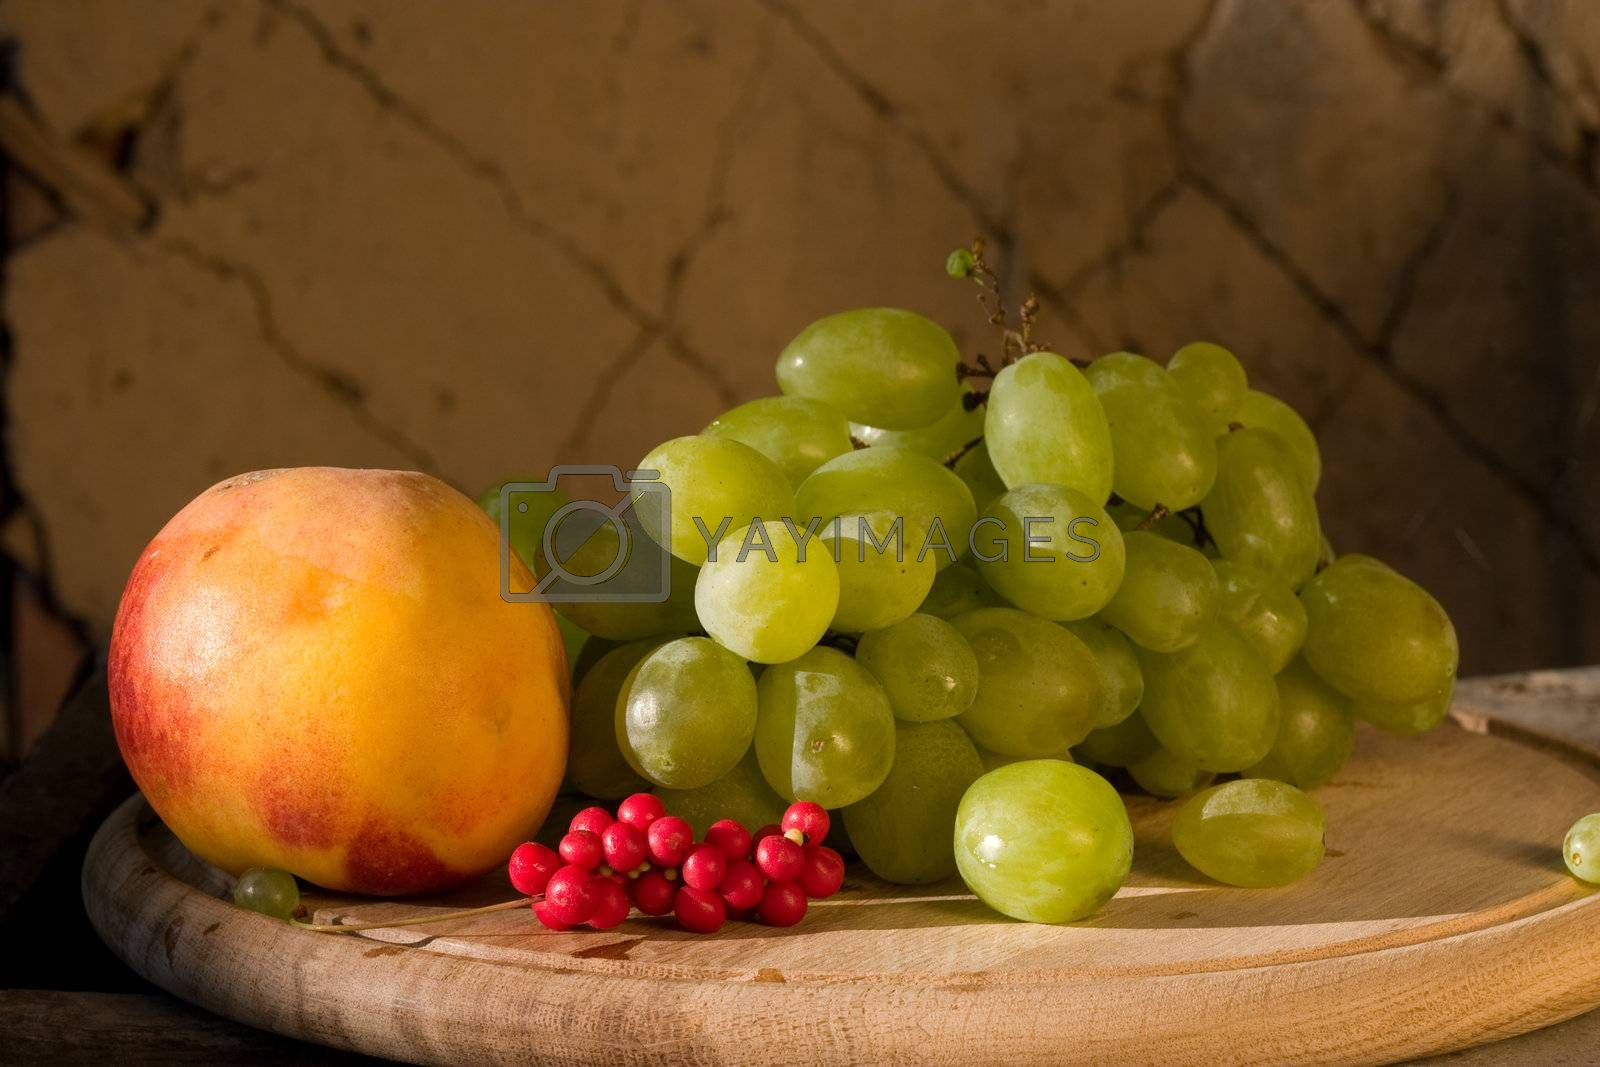 Royalty free image of fruit by agg